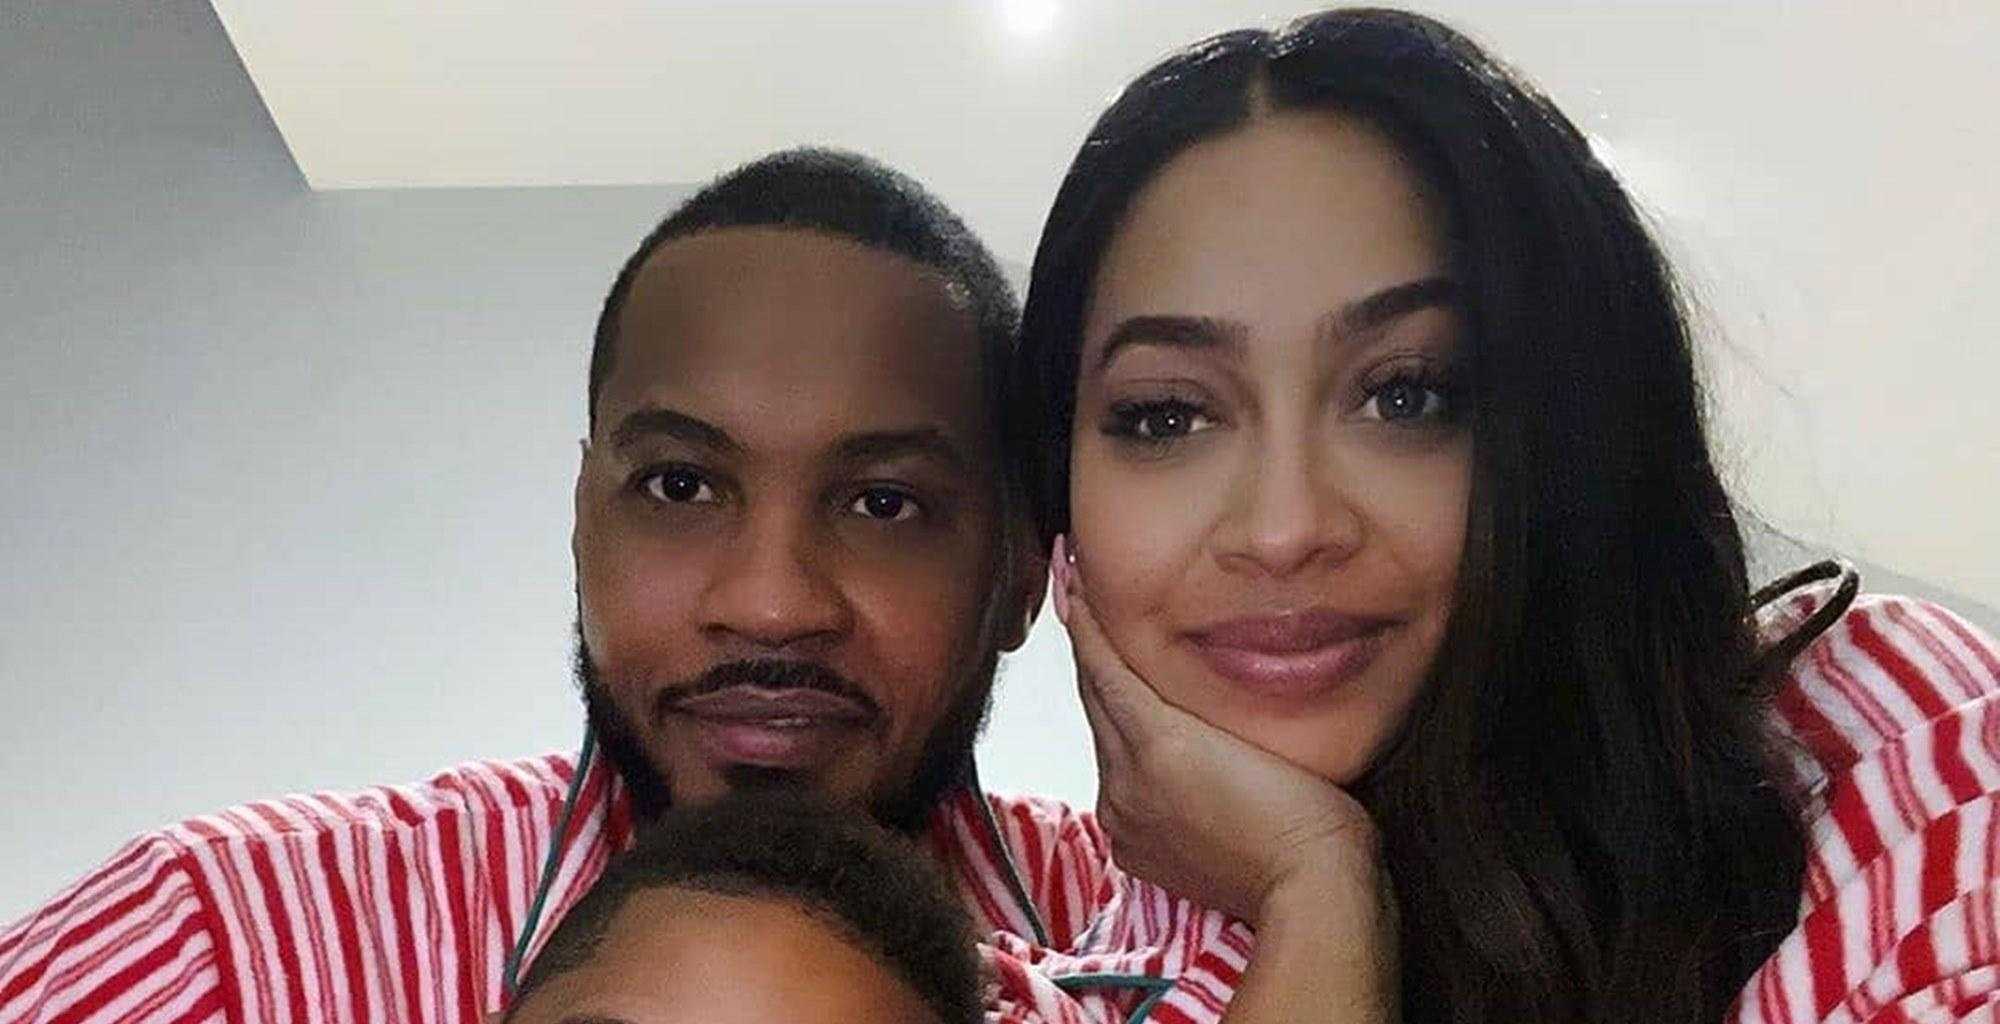 La La Anthony Reunites With Husband Carmelo Anthony And Pranks Her Son In Hilarious Video Where Kiyan Says He Is The Boss